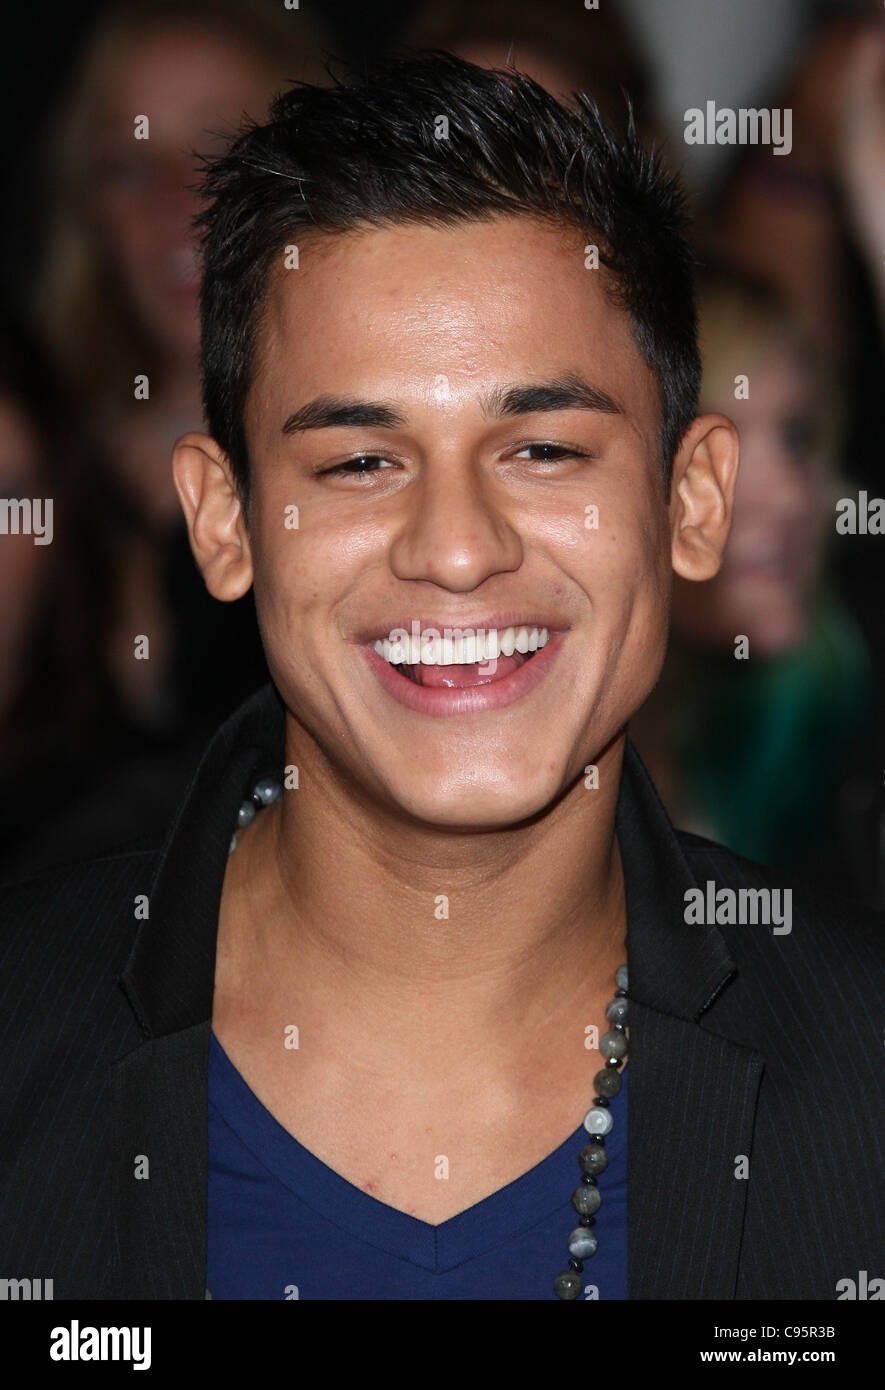 BRONSON PELLETIER THE TWILIGHT SAGA: BREAKING DAWN - PART 1. WORLD PREMIERE DOWNTOWN LOS ANGELES CALIFORNIA USA - Stock Image